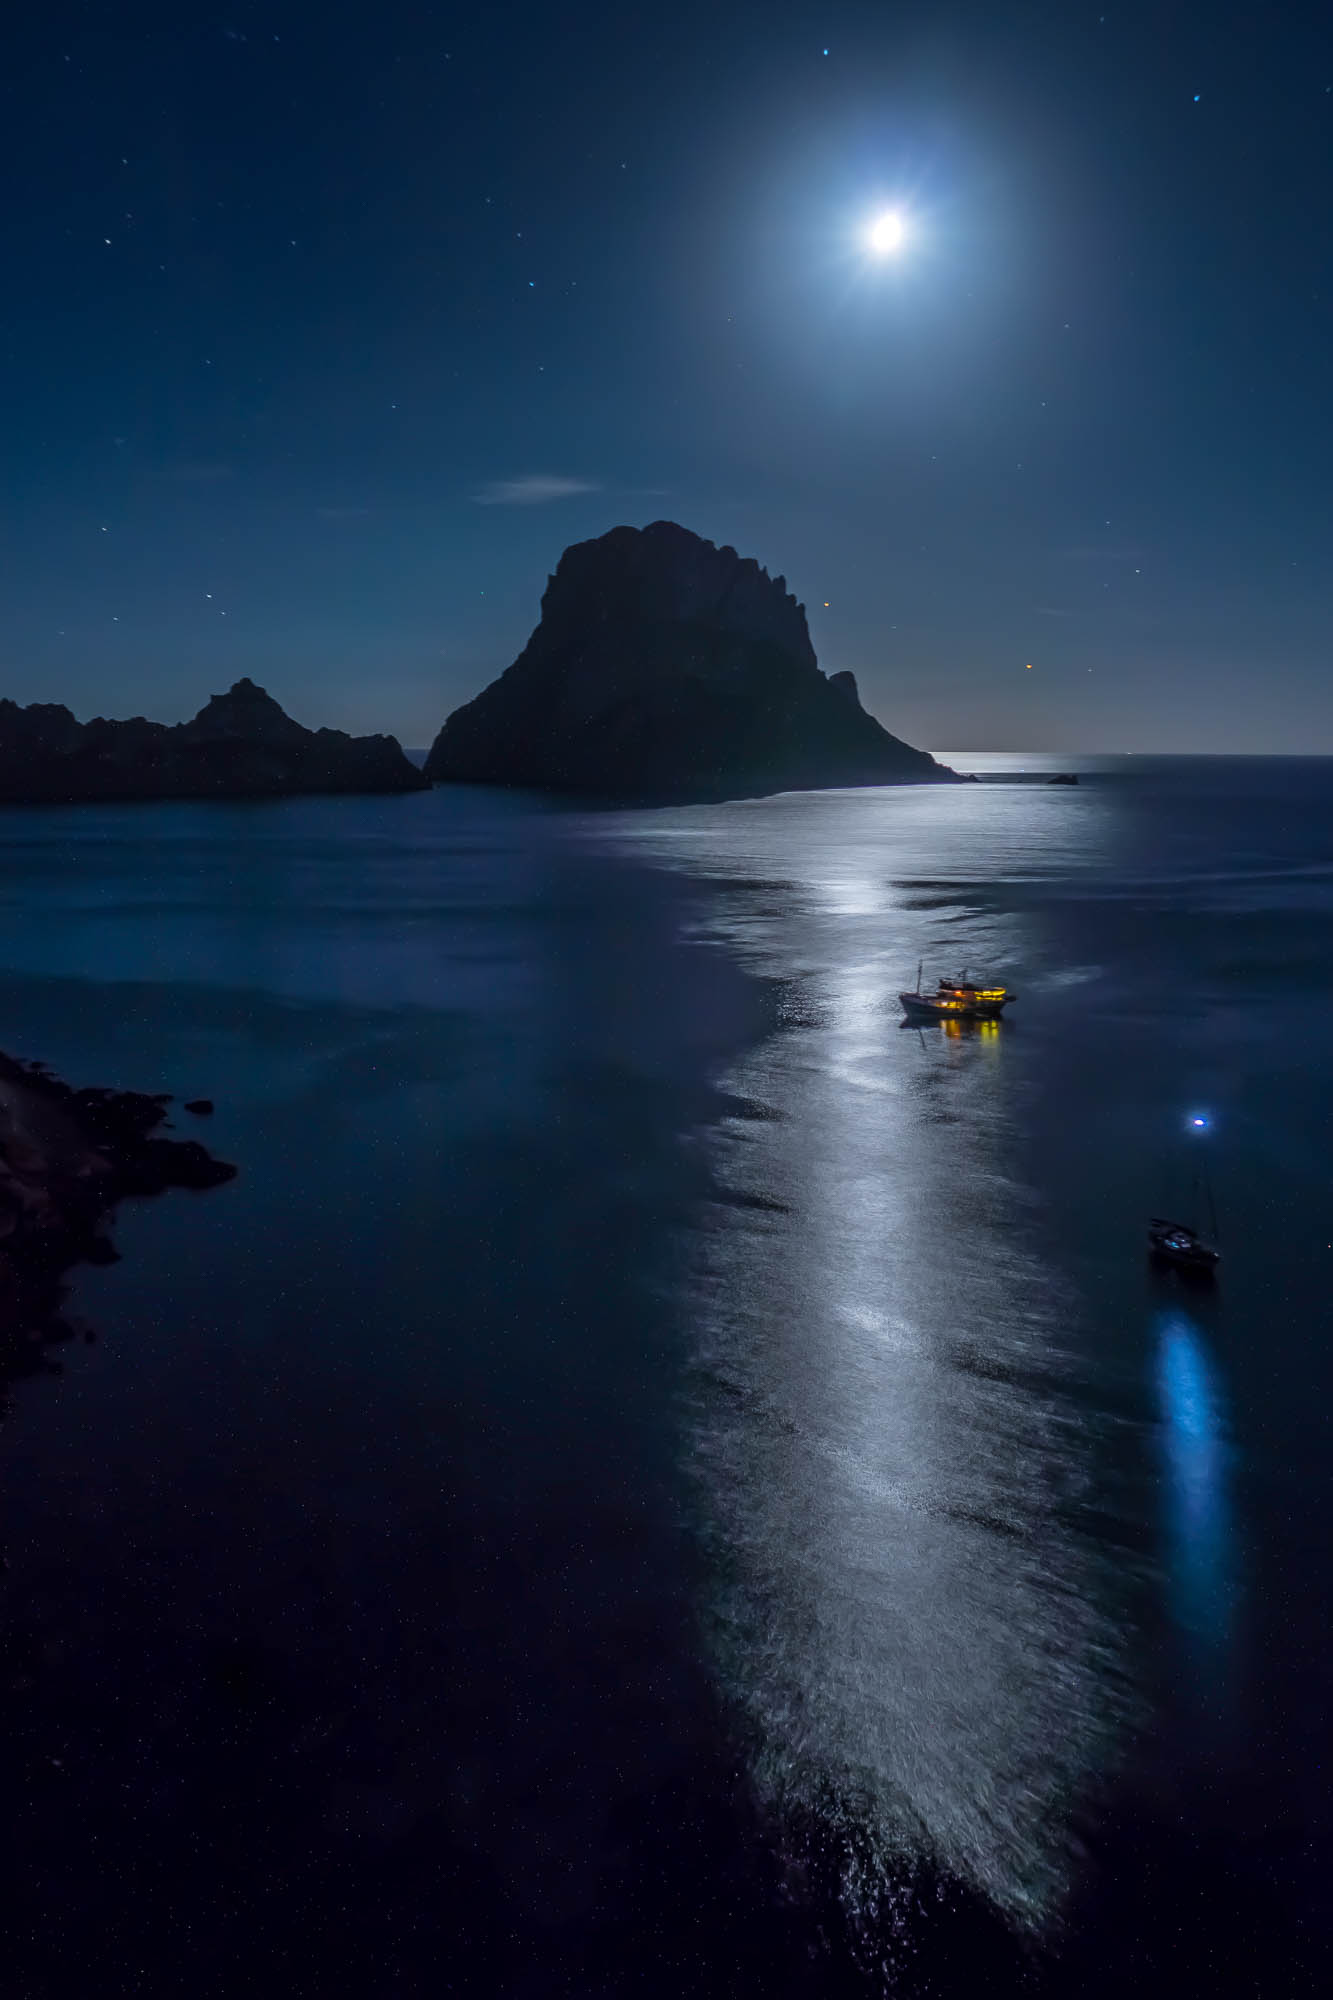 A full moon casts its reflection upon the calm sea on a warm summer evening with the spiritual rock of Es Vedra silhouetted beyond